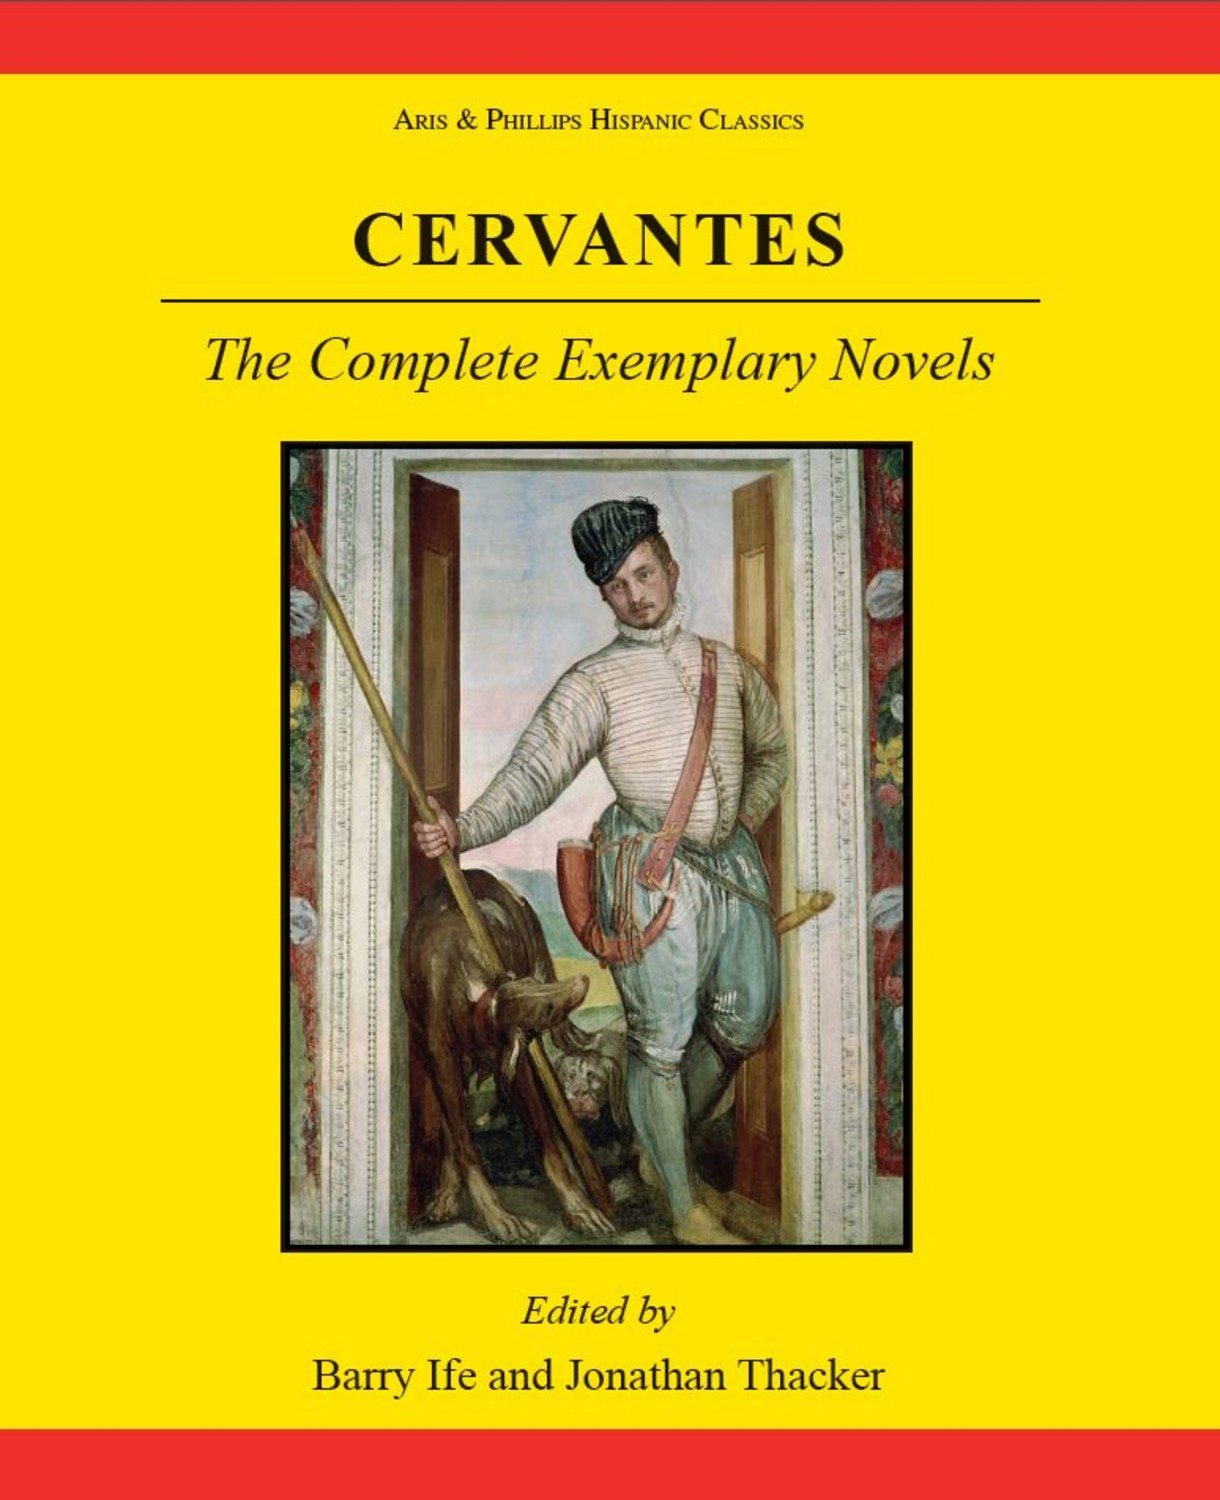 Cervantes: The Complete Exemplary Novels